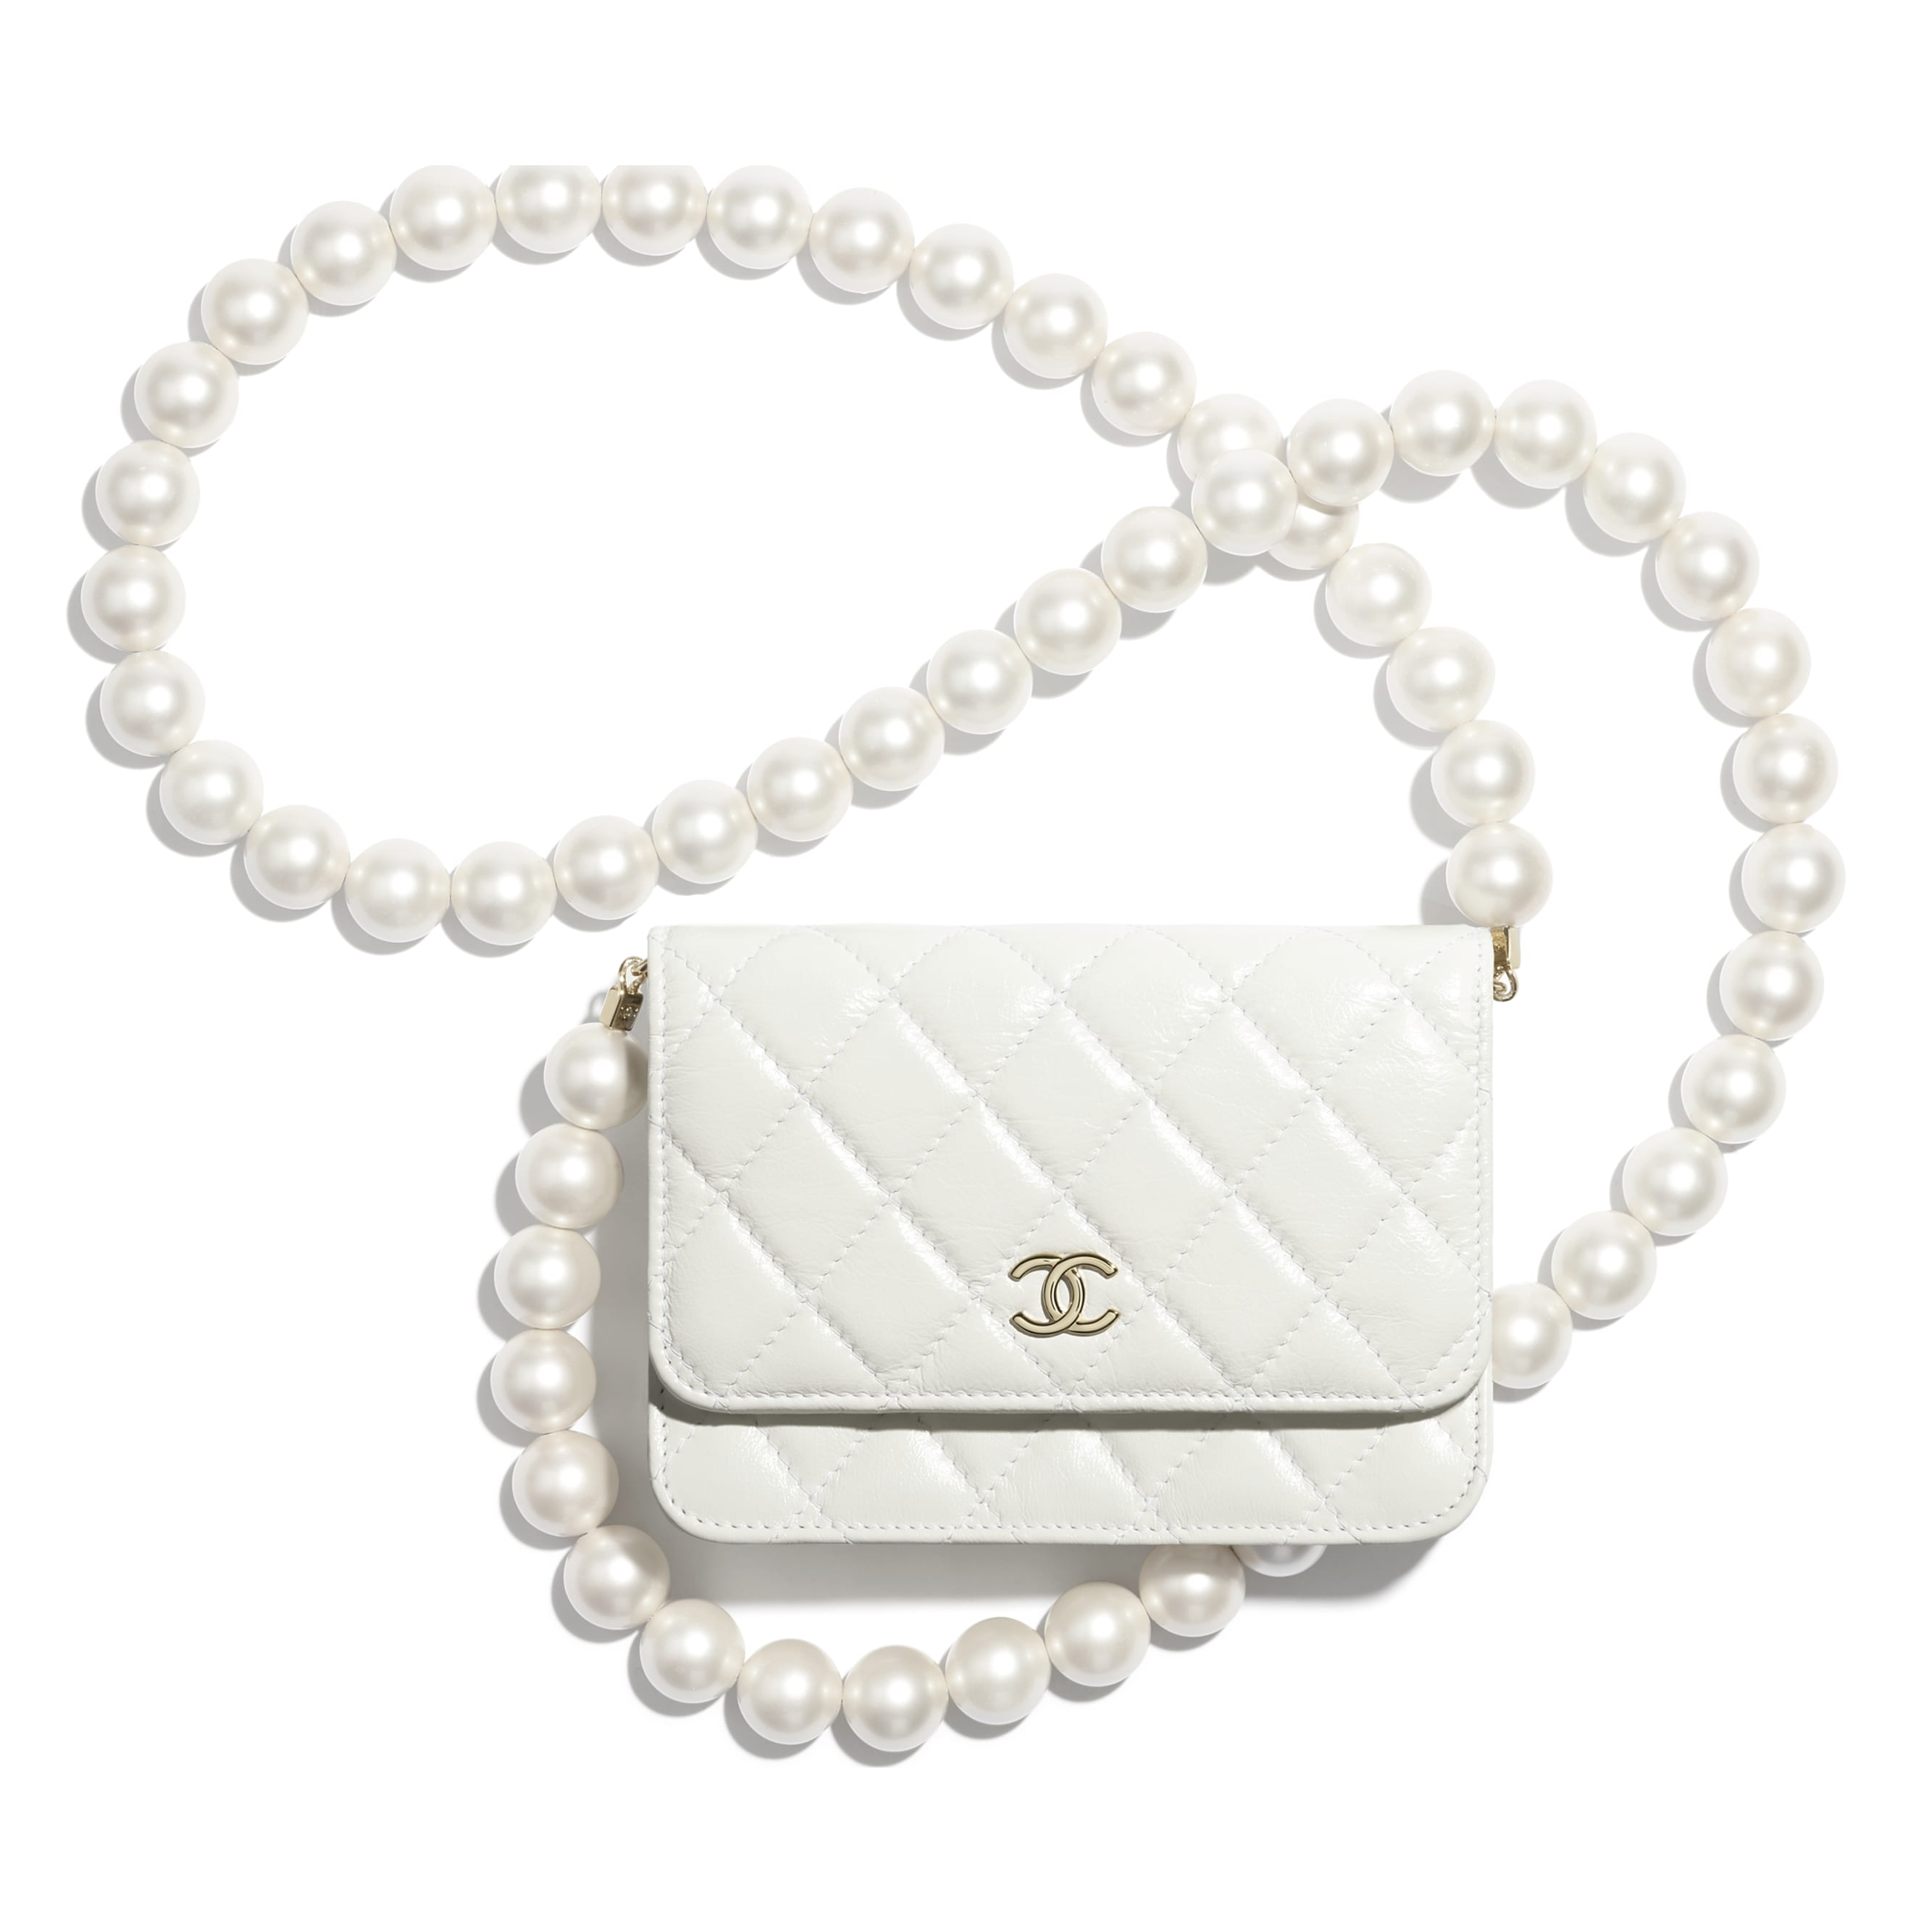 Mini Wallet on Chain - White - Calfskin, Imitation Pearls & Gold-Tone Metal - CHANEL - Default view - see standard sized version